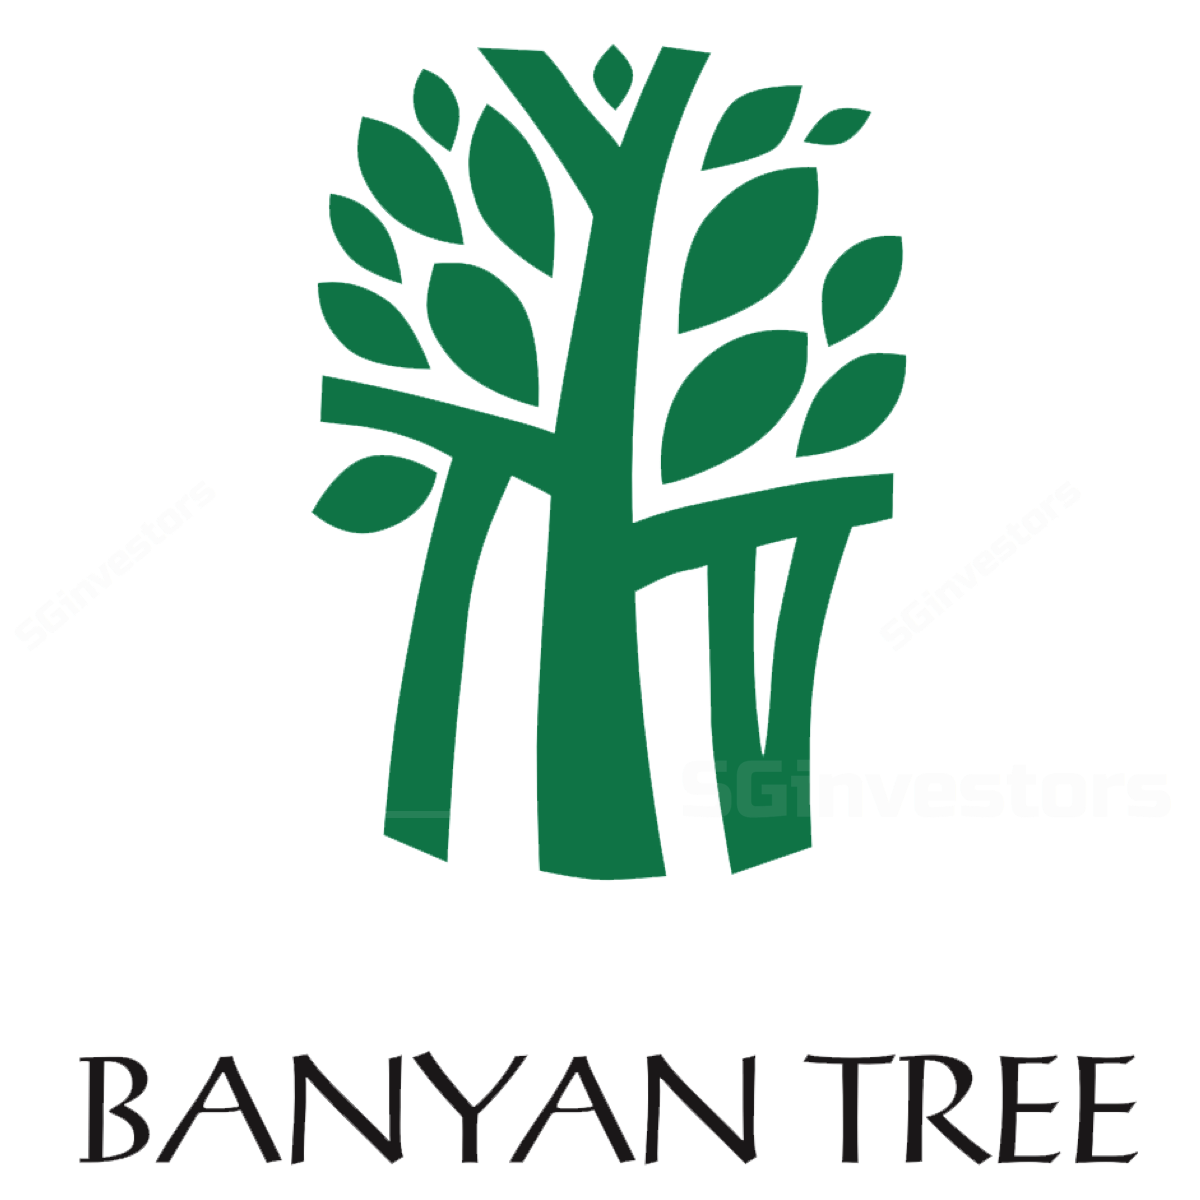 Banyan Tree Holdings Limited - Phillip Securities 2018-05-17: Improved Profitability Across Major Business Segments